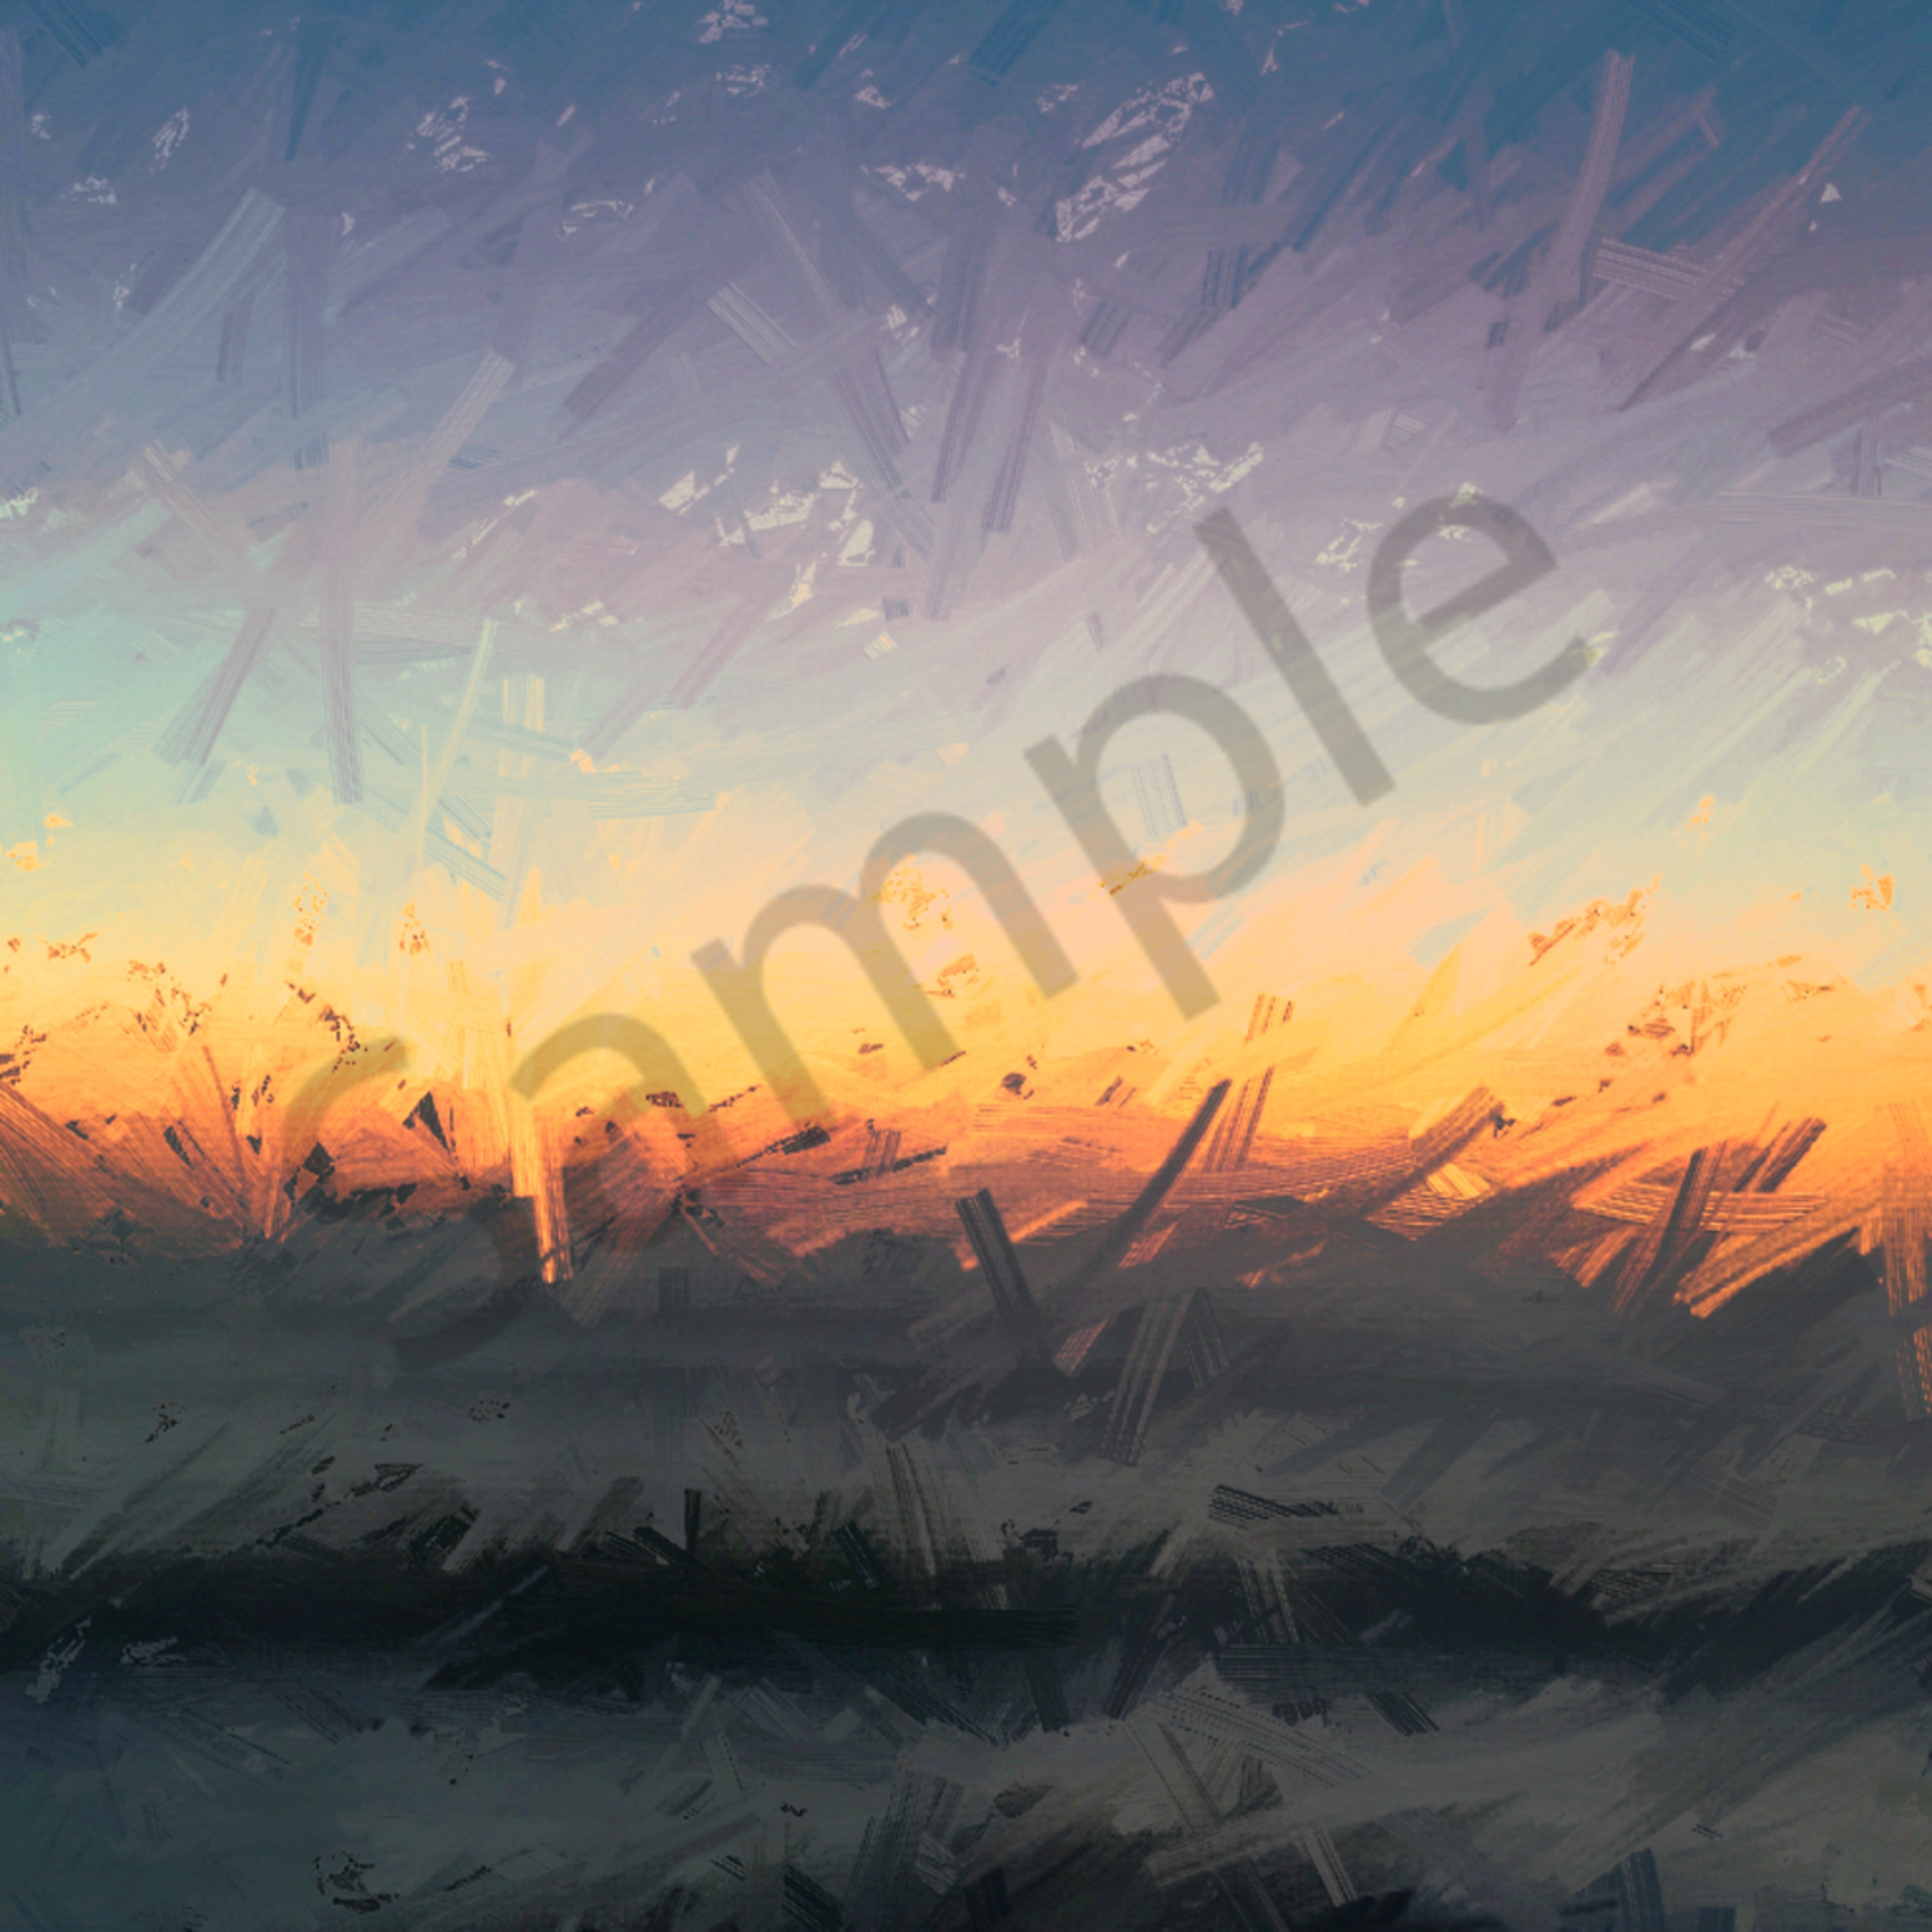 Img 2352 date night oceanview sunset 2019  enlight281 abstract highlight tag bopth6